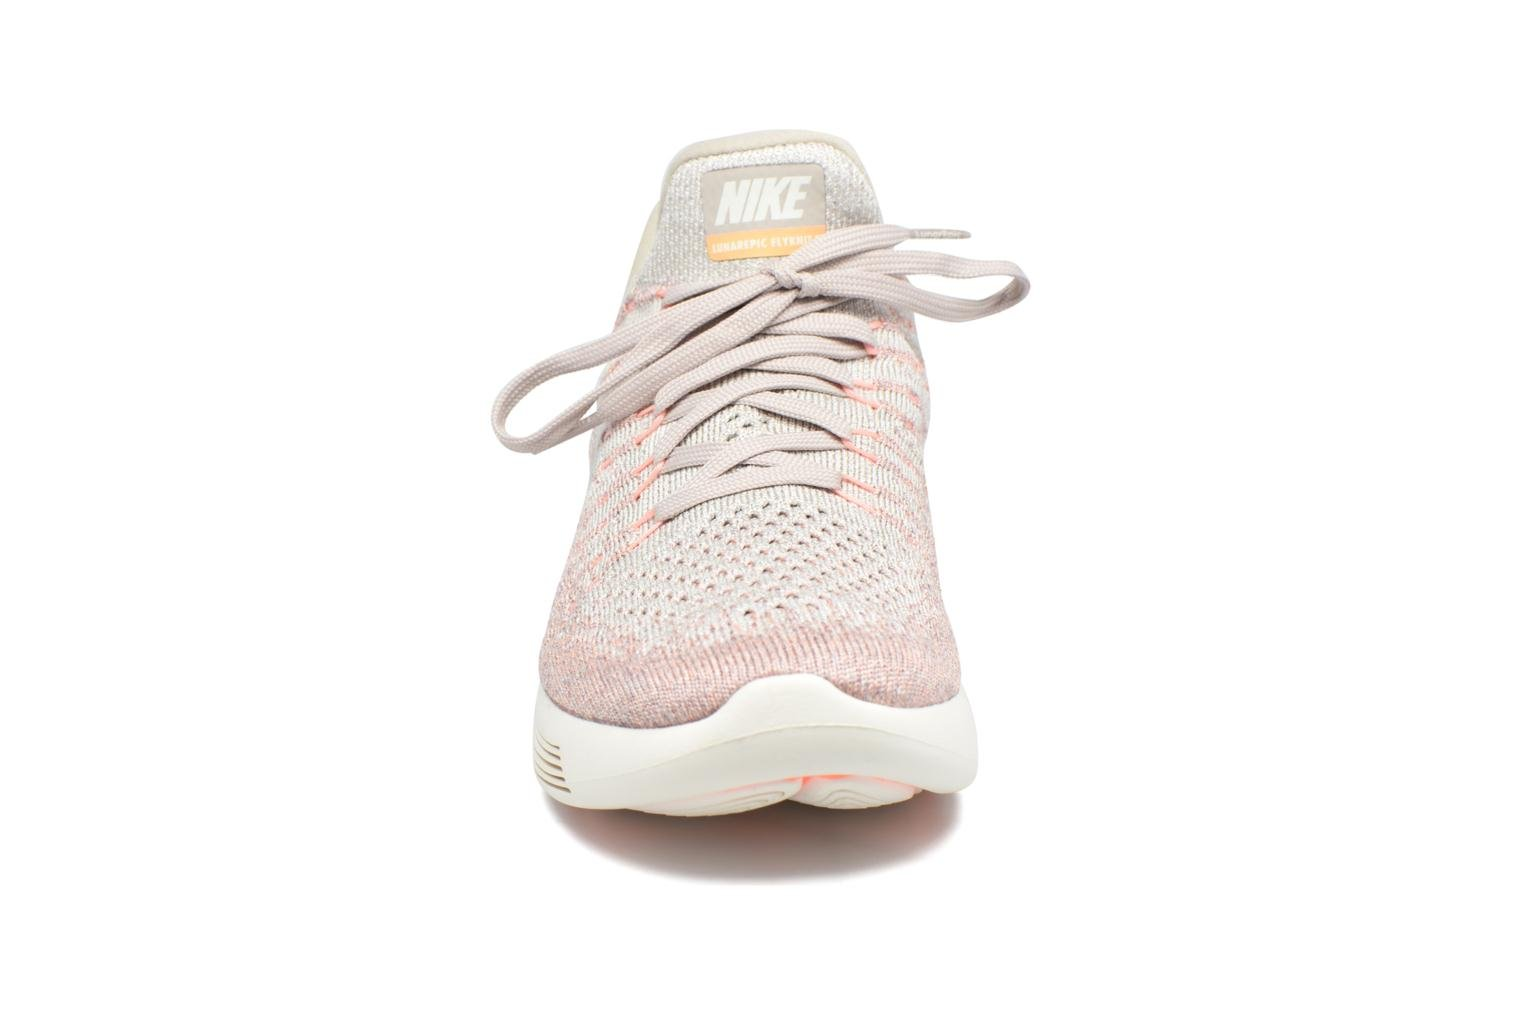 Chaussures de sport Nike W Nike Lunarepic Low Flyknit 2 Rose vue portées chaussures